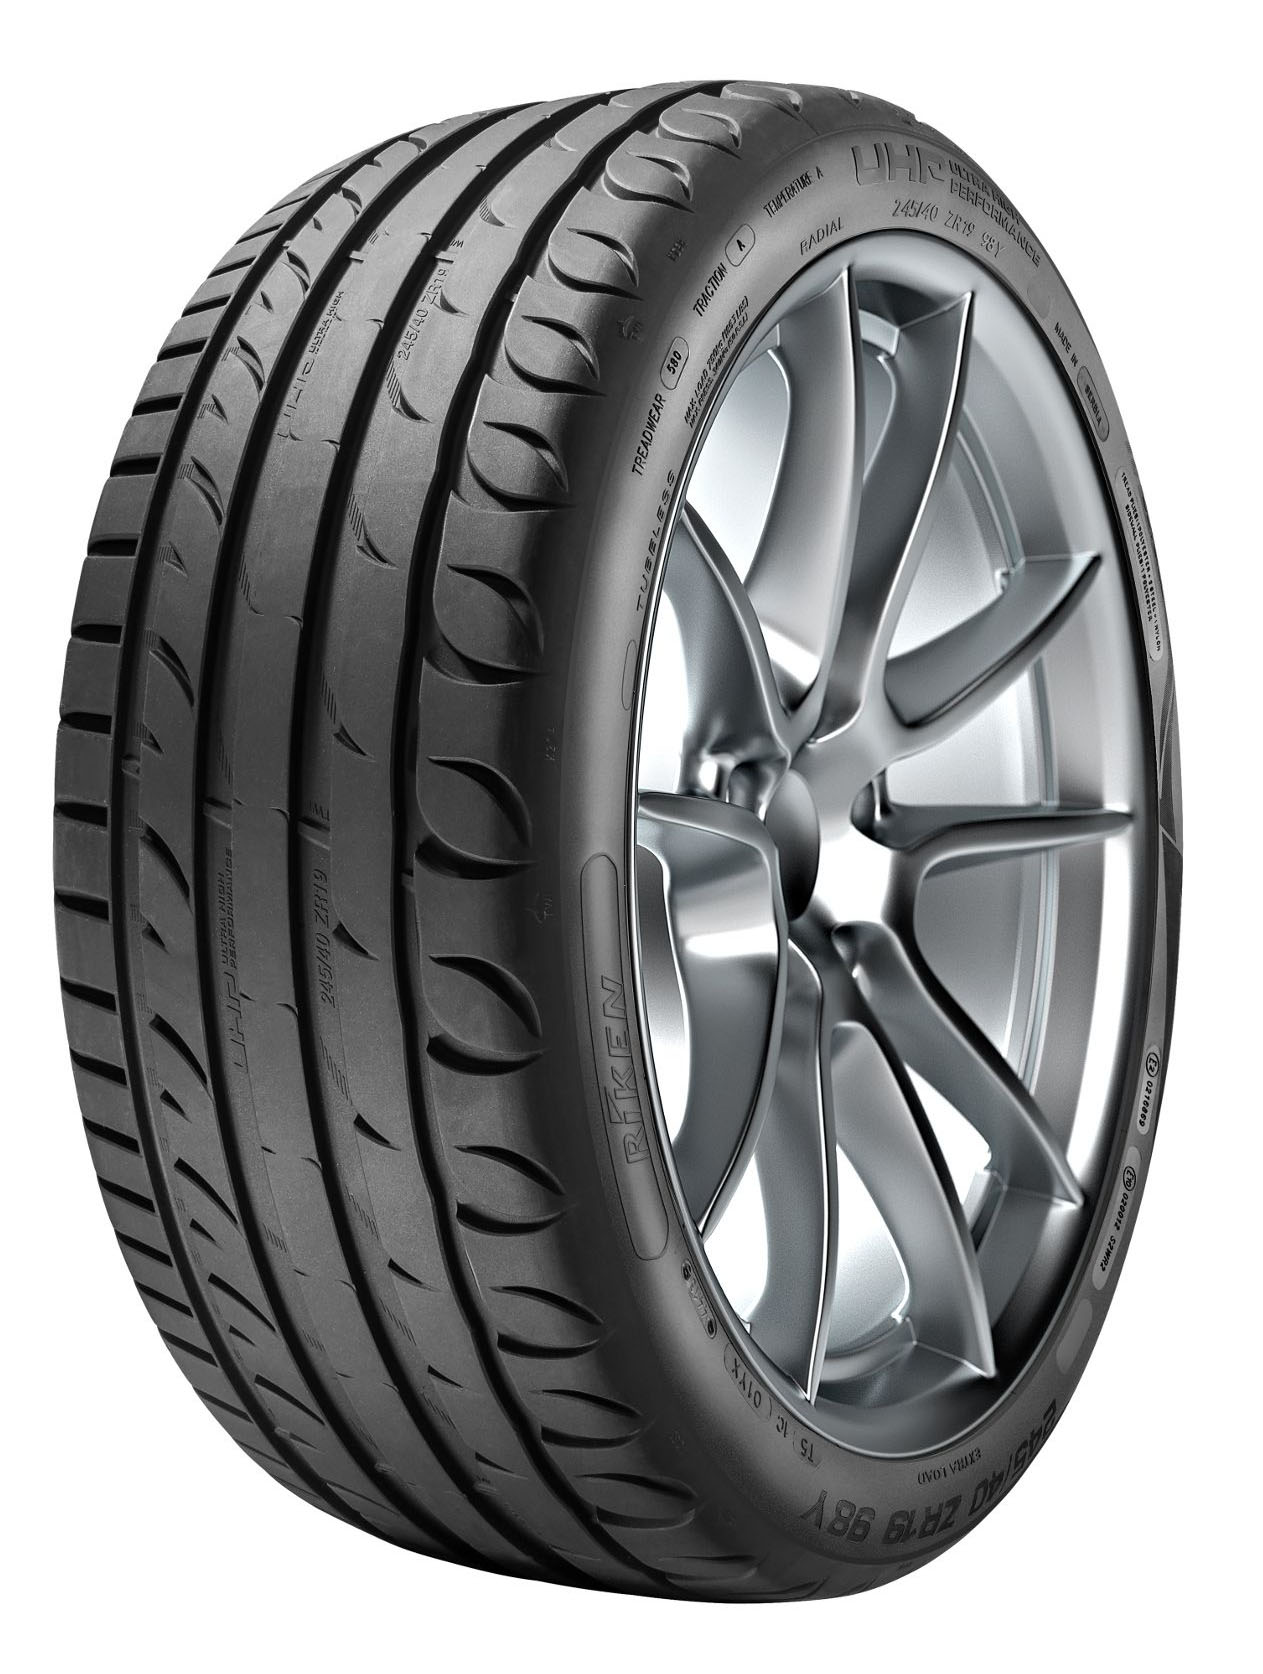 Anvelopa Vara Riken by michelin UltraHigh Performance 215/50R17 95W